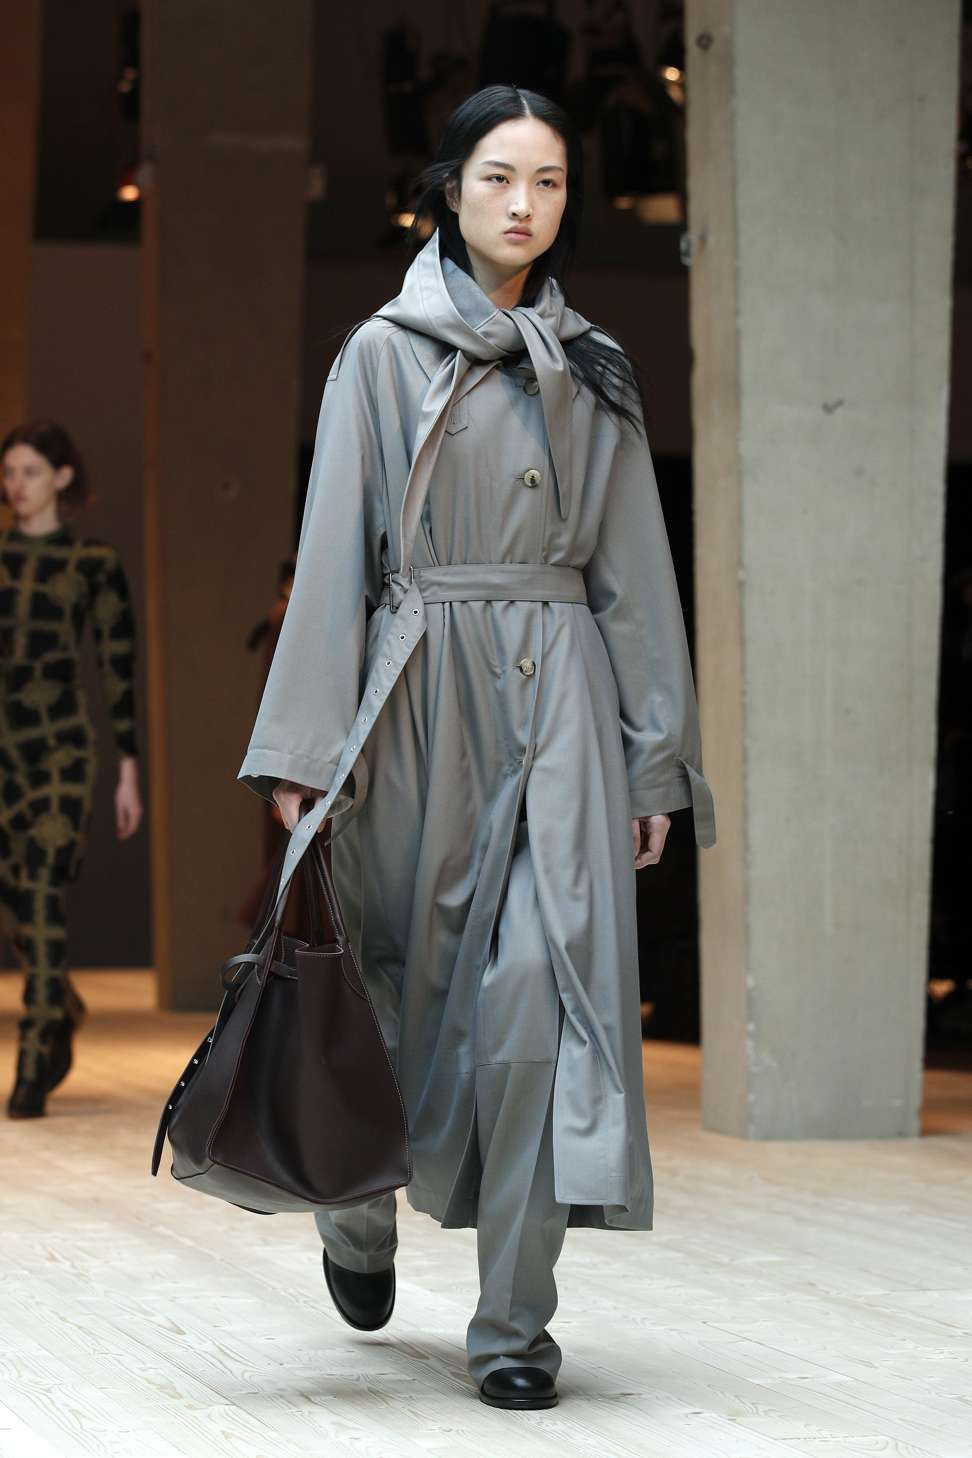 celine gray 1aqx  Celine's autumn-winter 2017 collection at Paris Fashion Week Photo: EPA